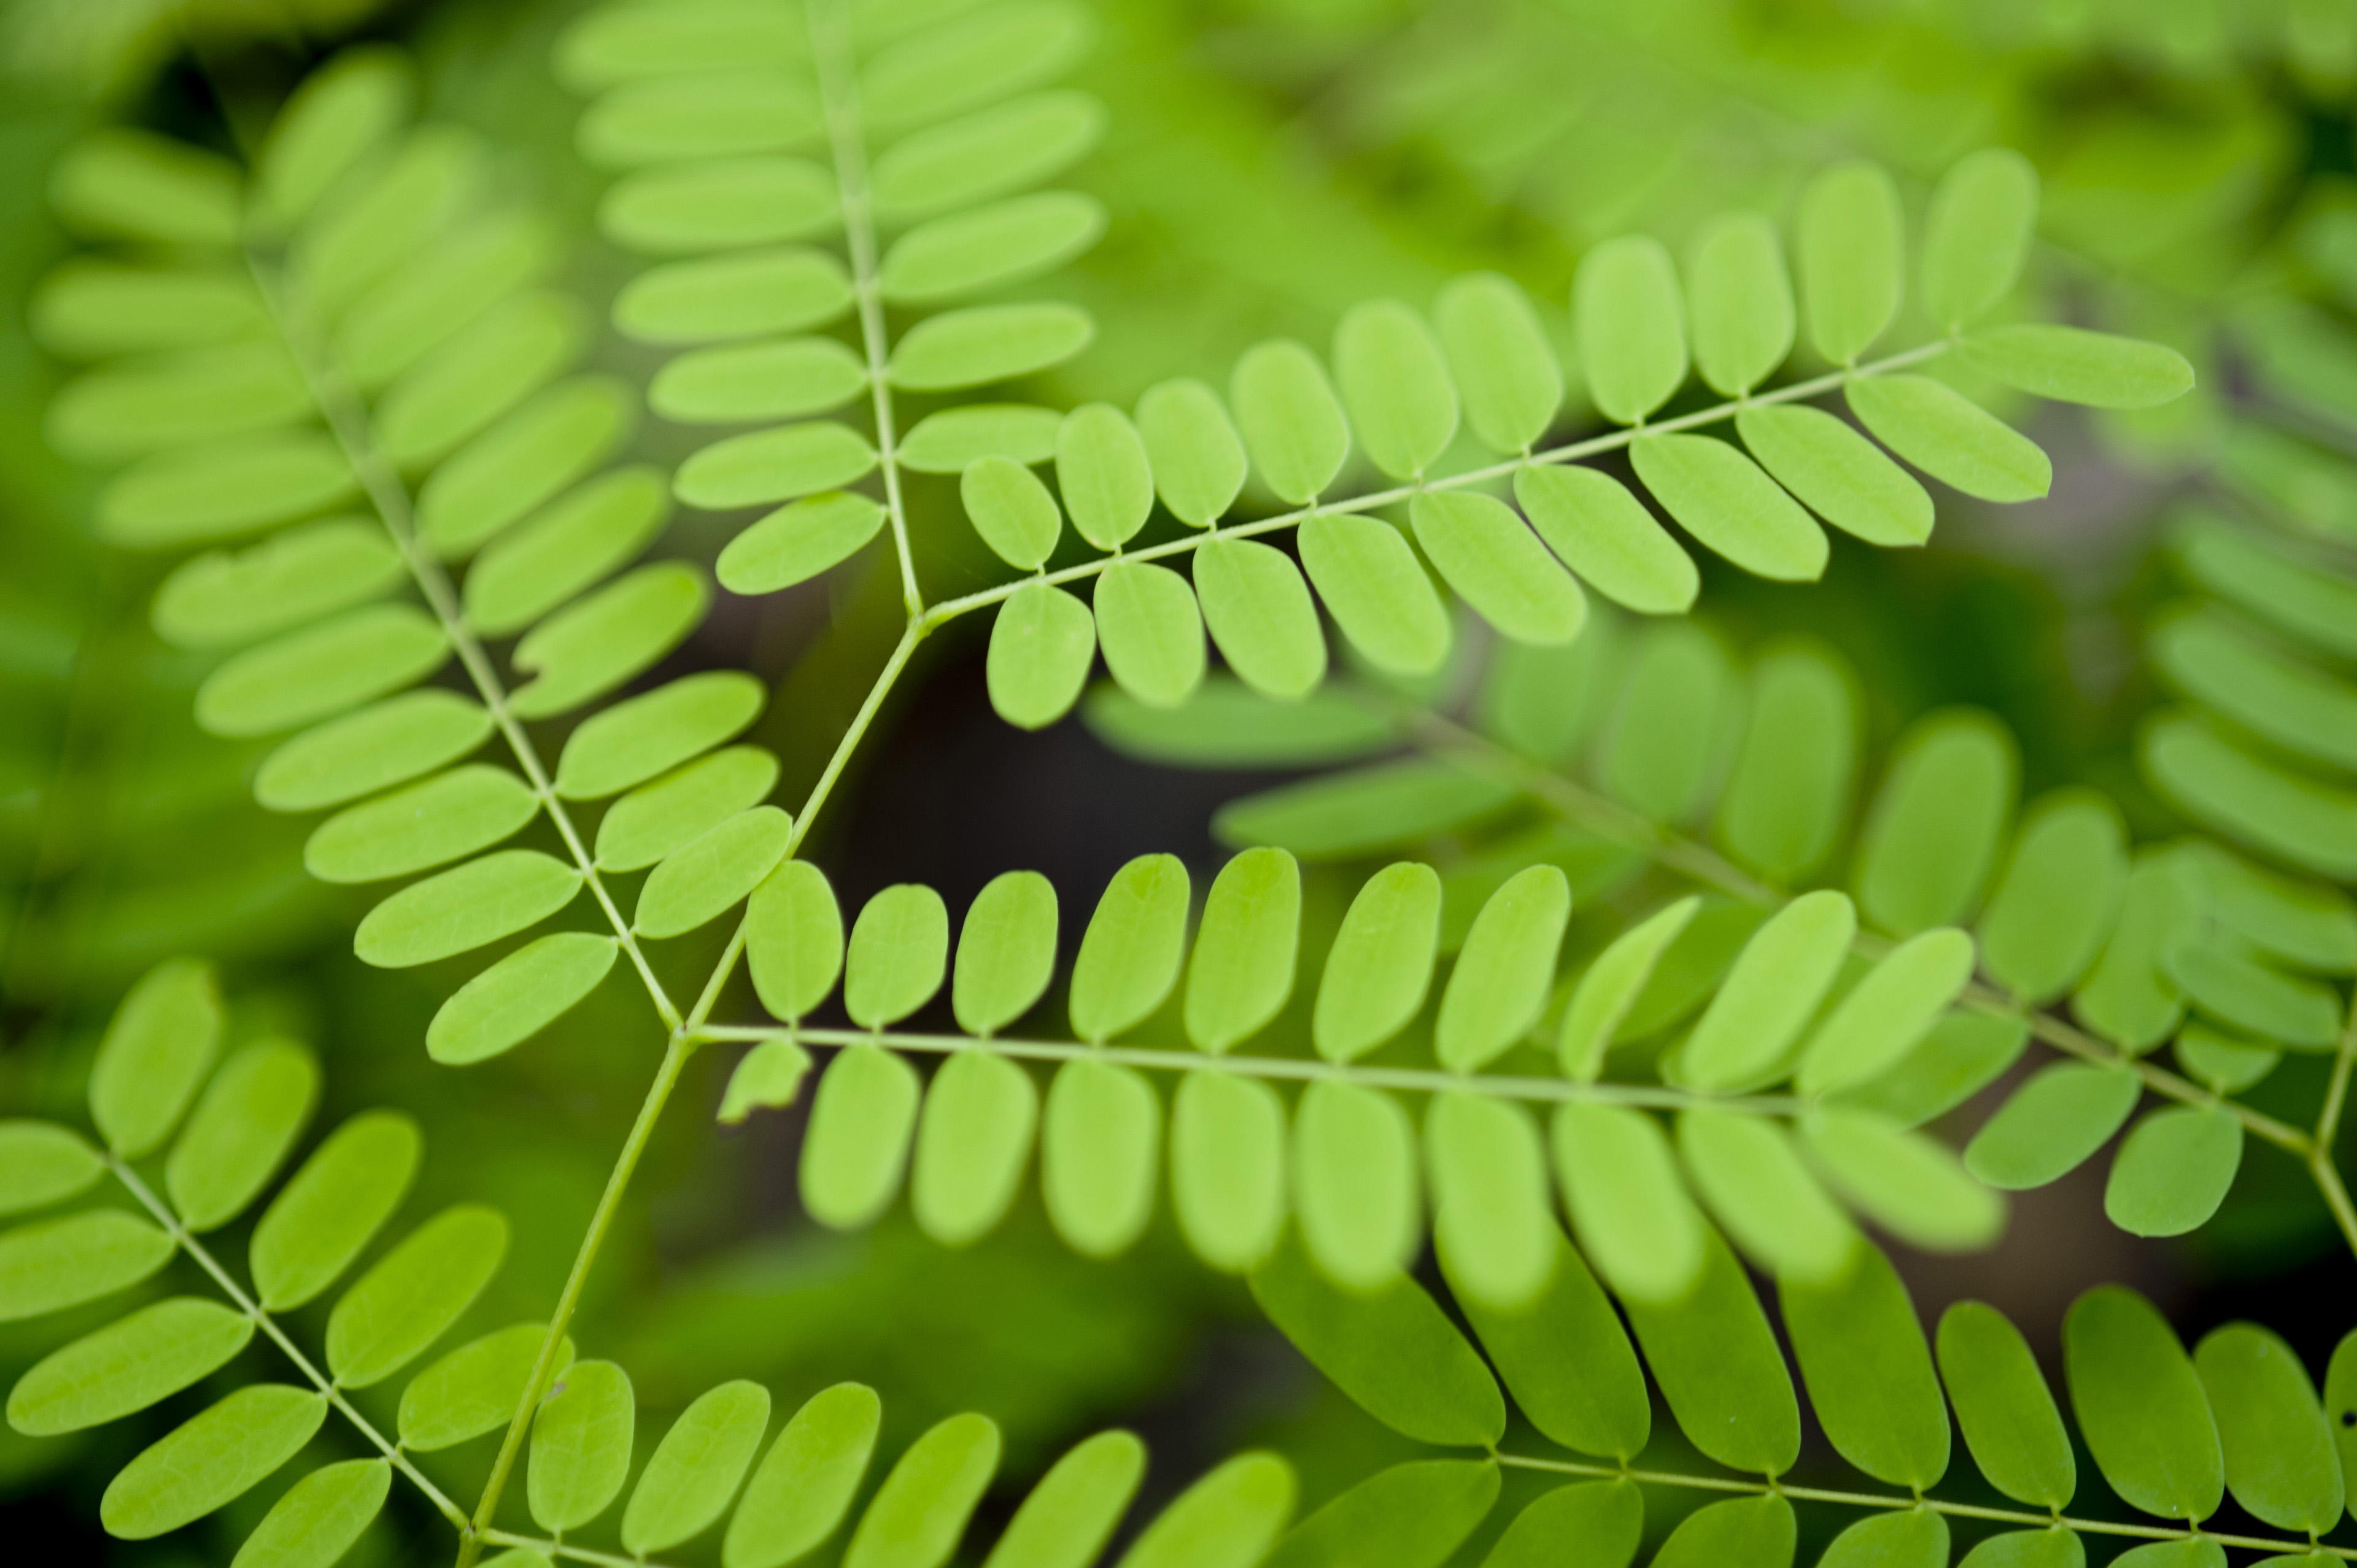 Closeup background texture photo of green plant fronds